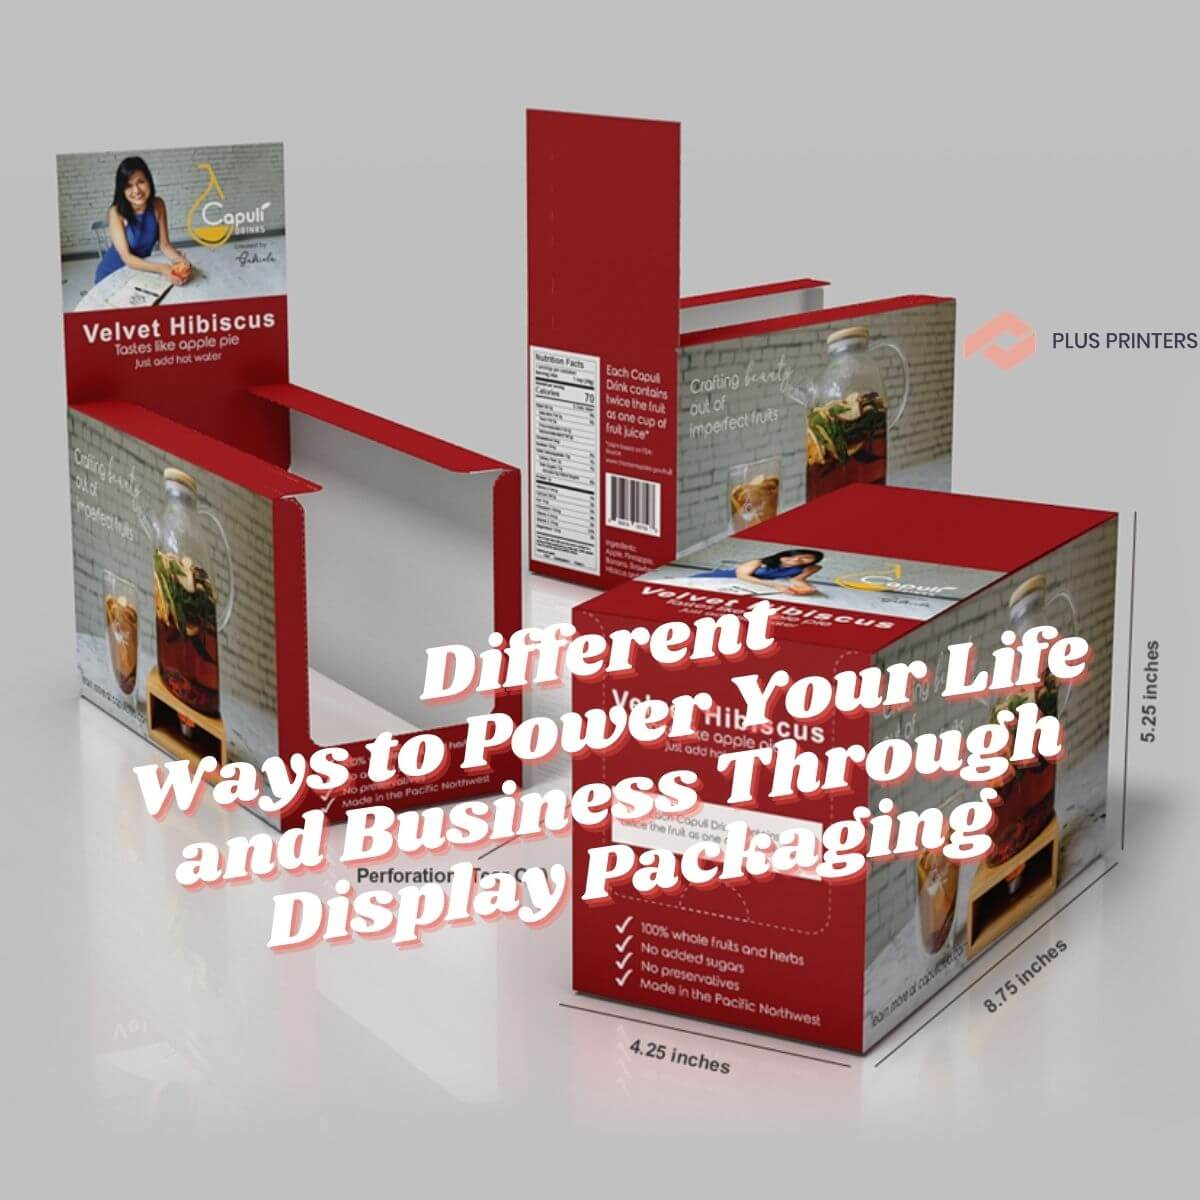 Business Through Display Packaging